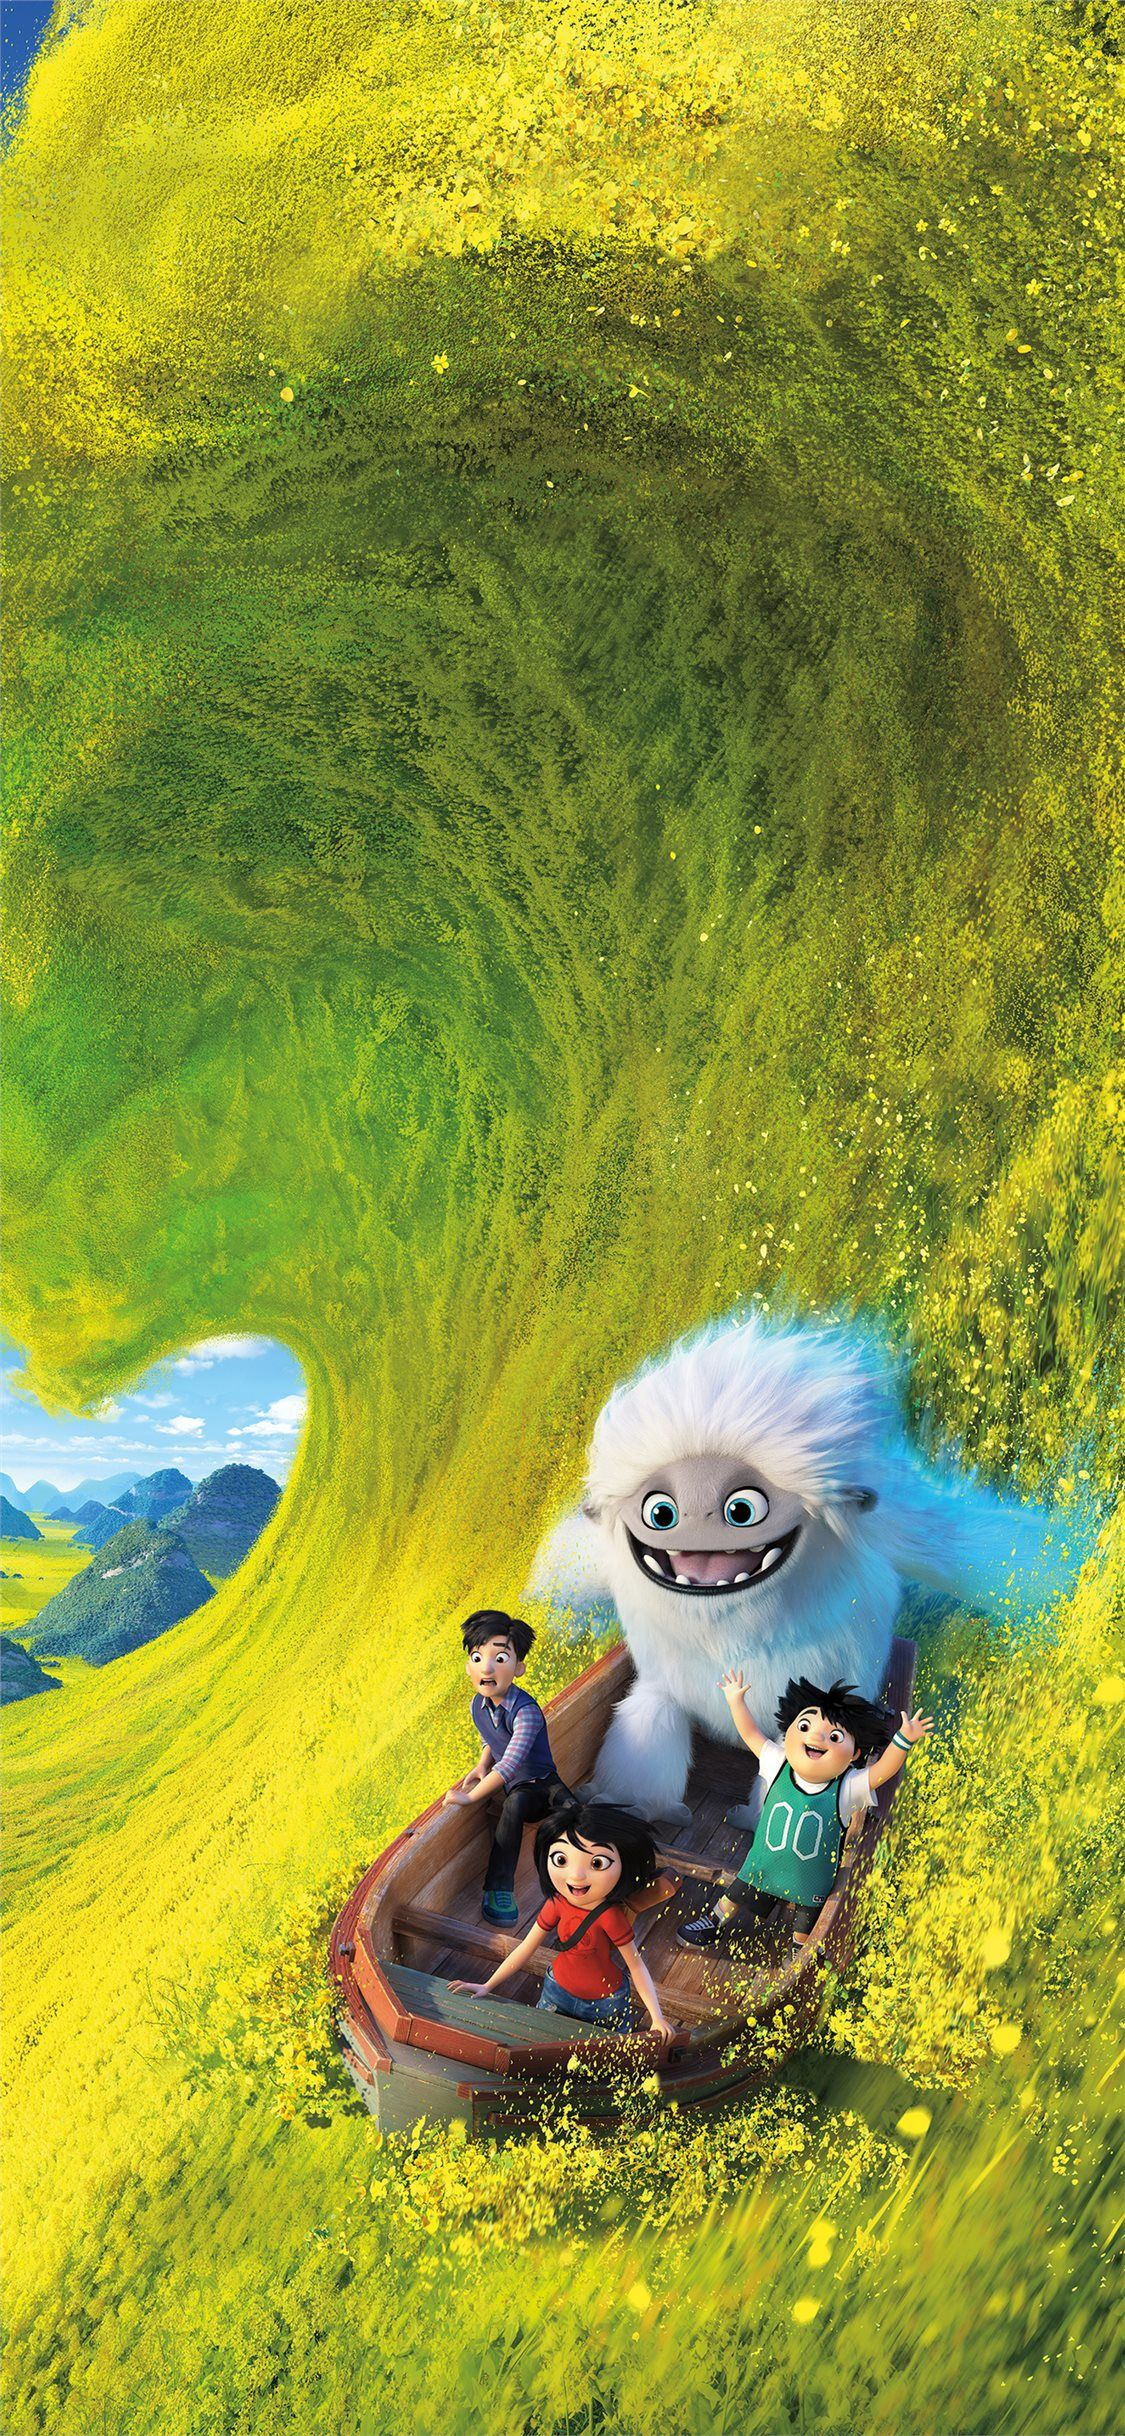 Free Download The Abominable 2019 Animated Movie 8k Wallpaper